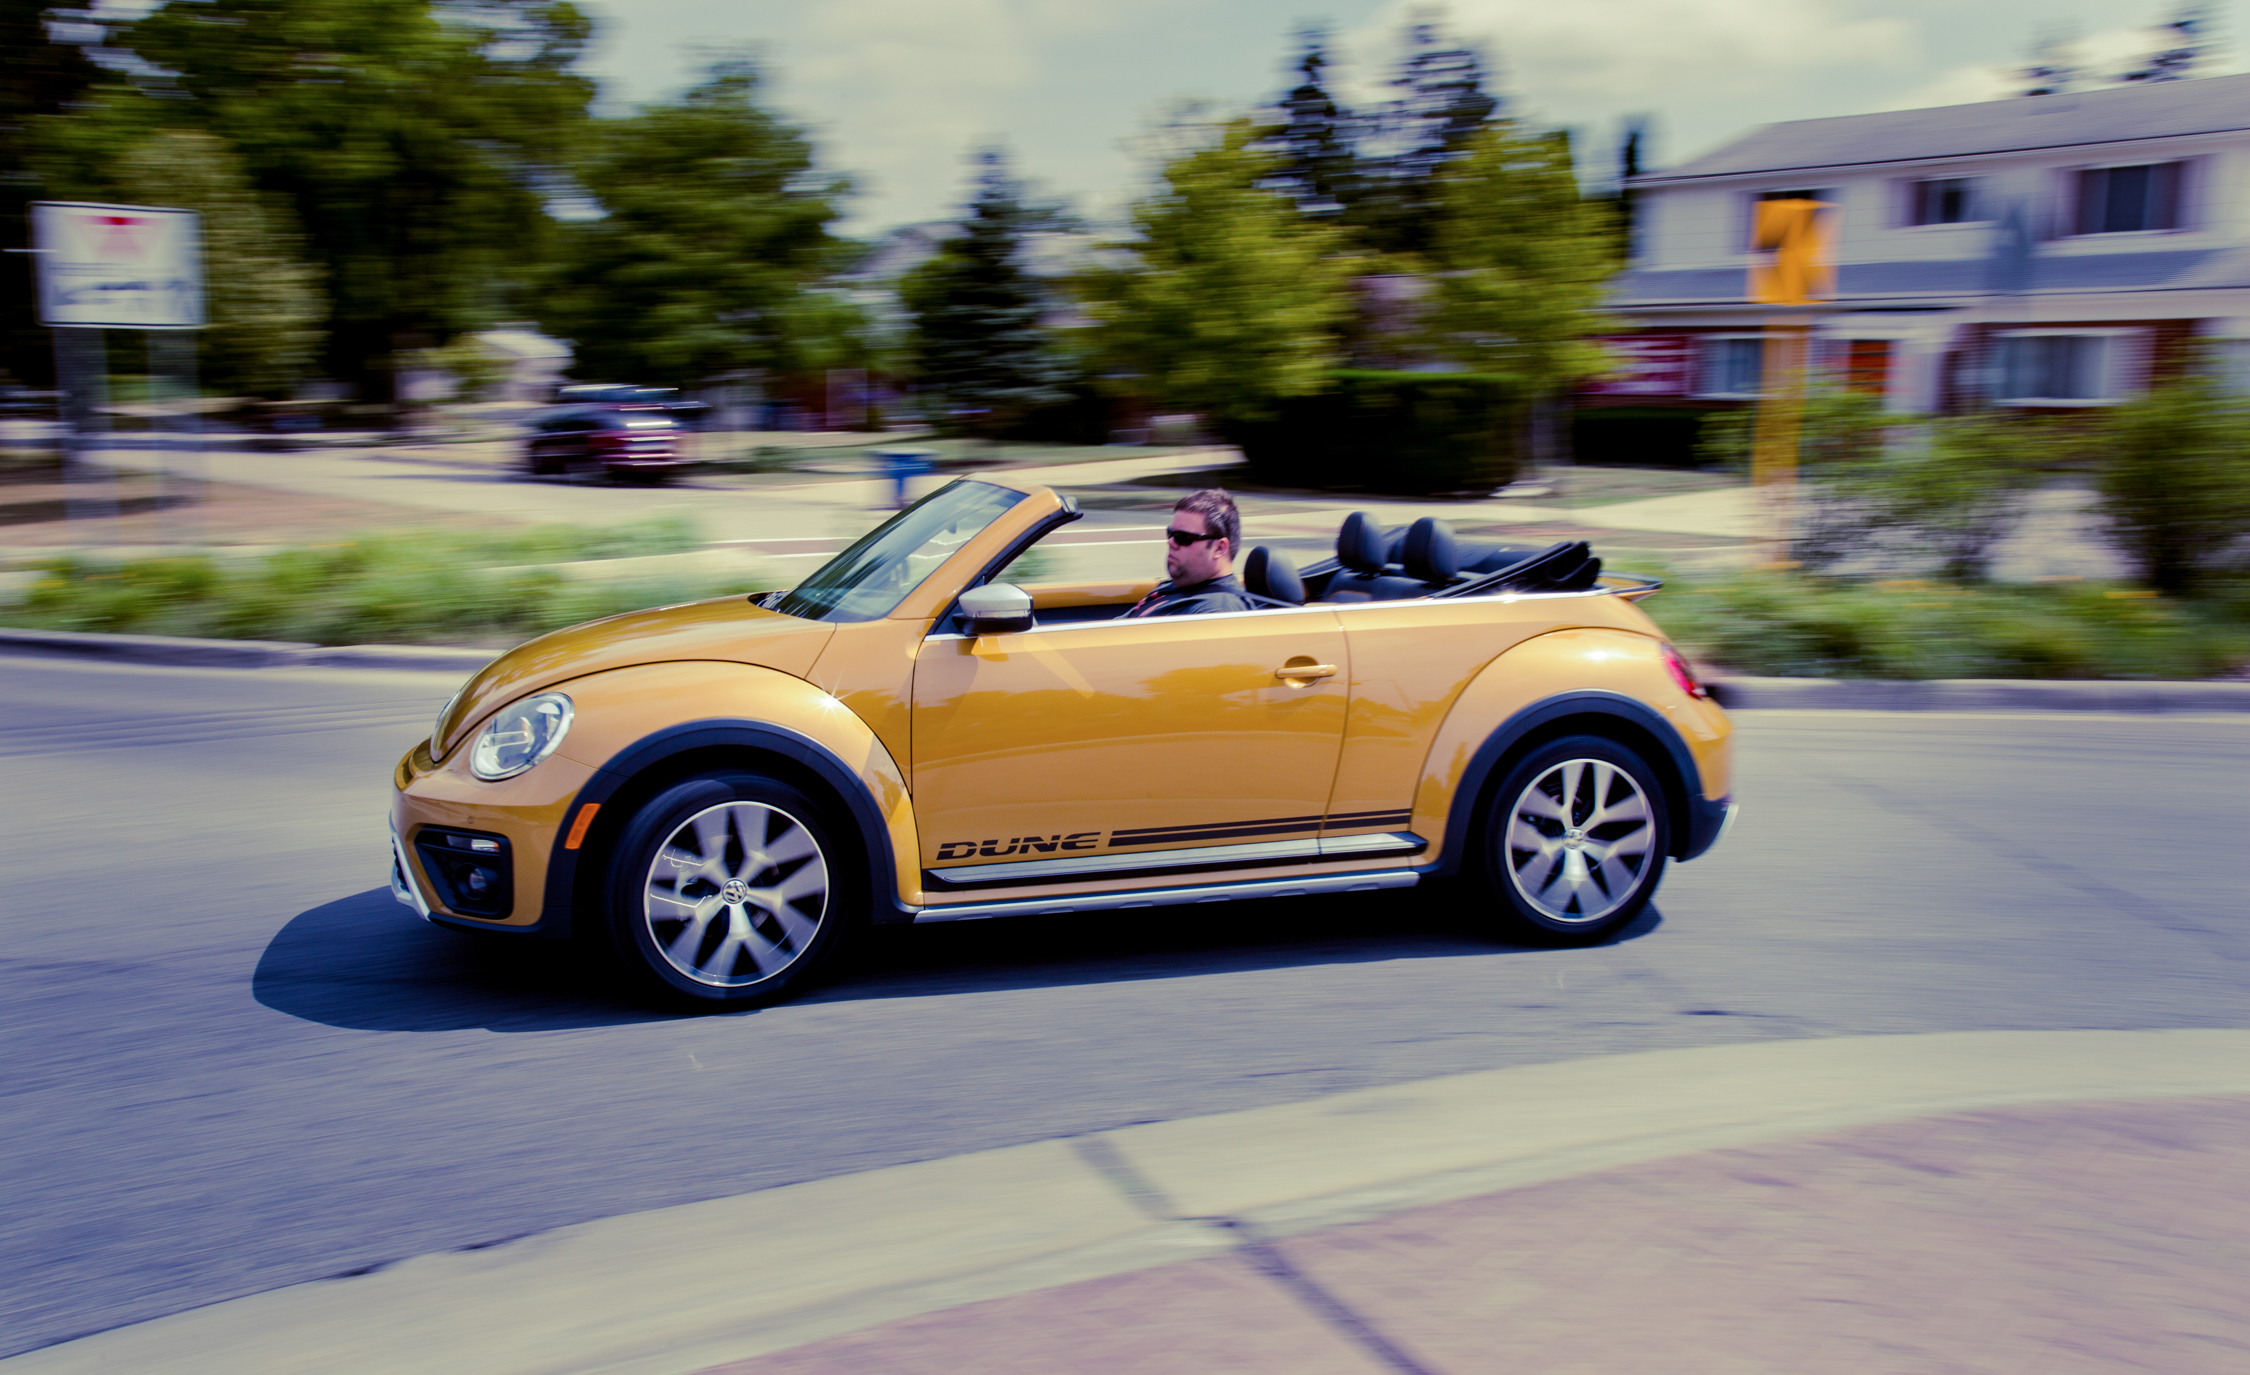 2017 Volkswagen Beetle Dune Convertible Test Drive Roof Open (Photo 16 of 19)